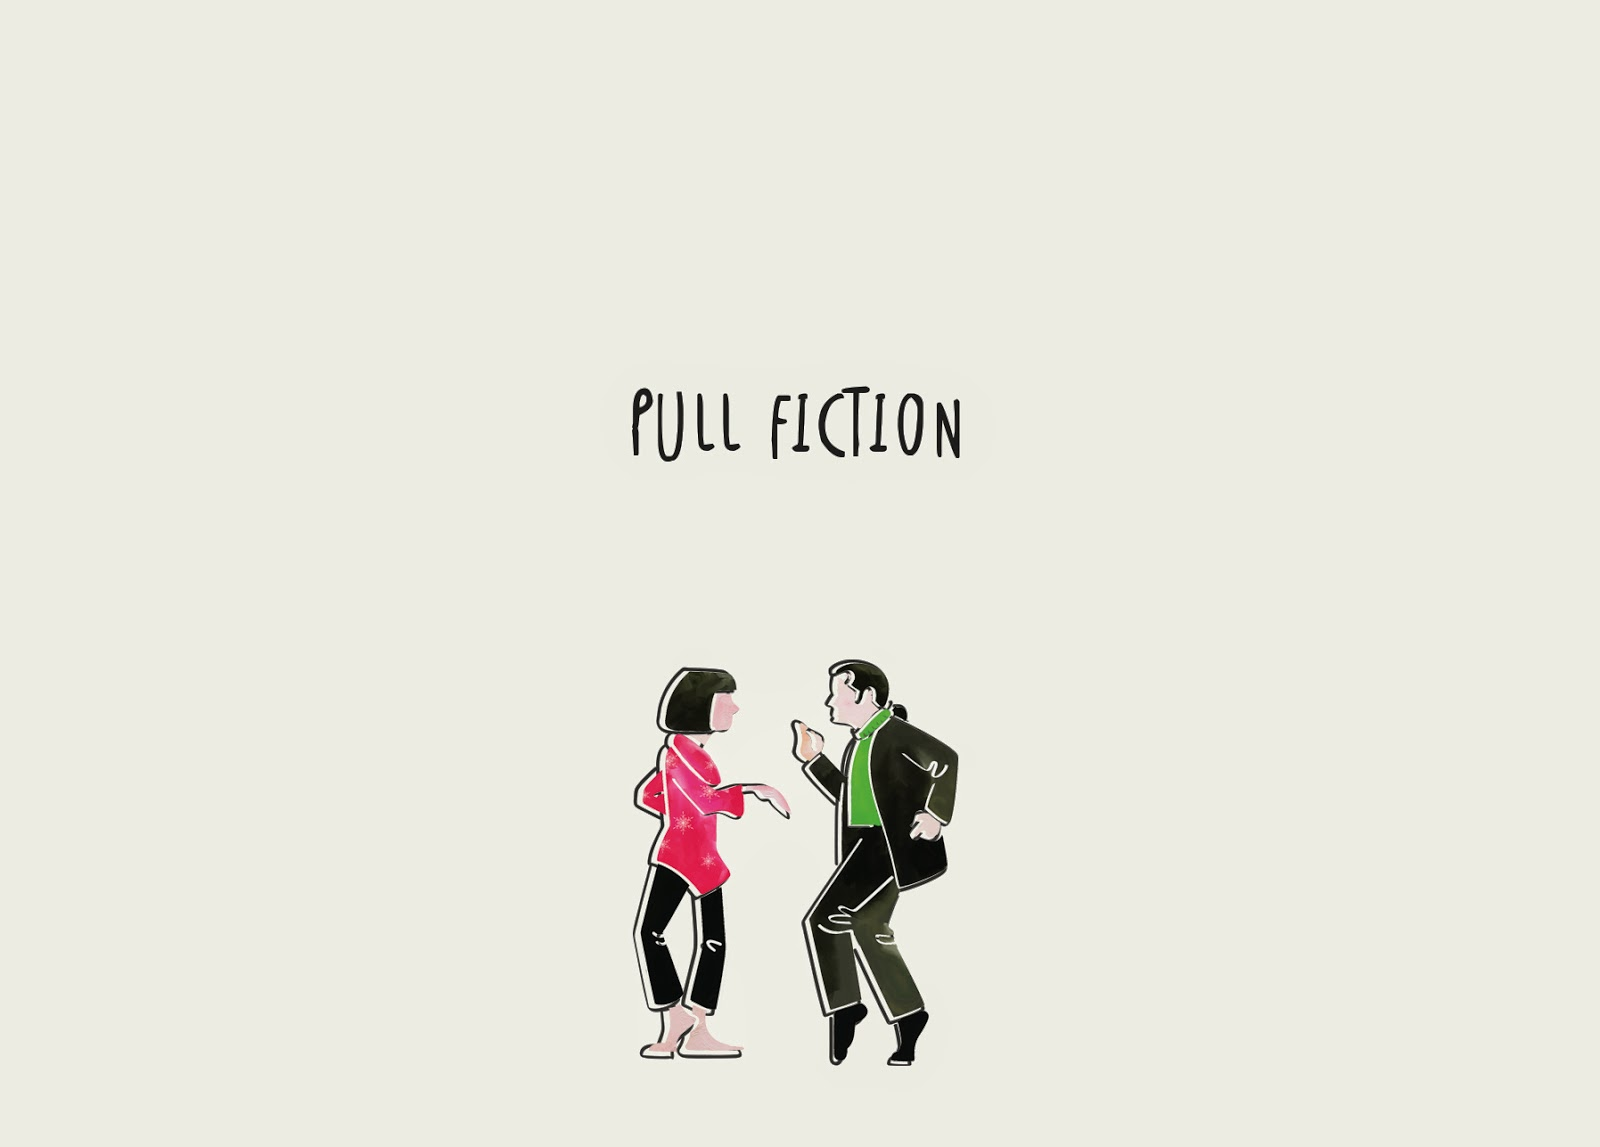 Pull Fiction